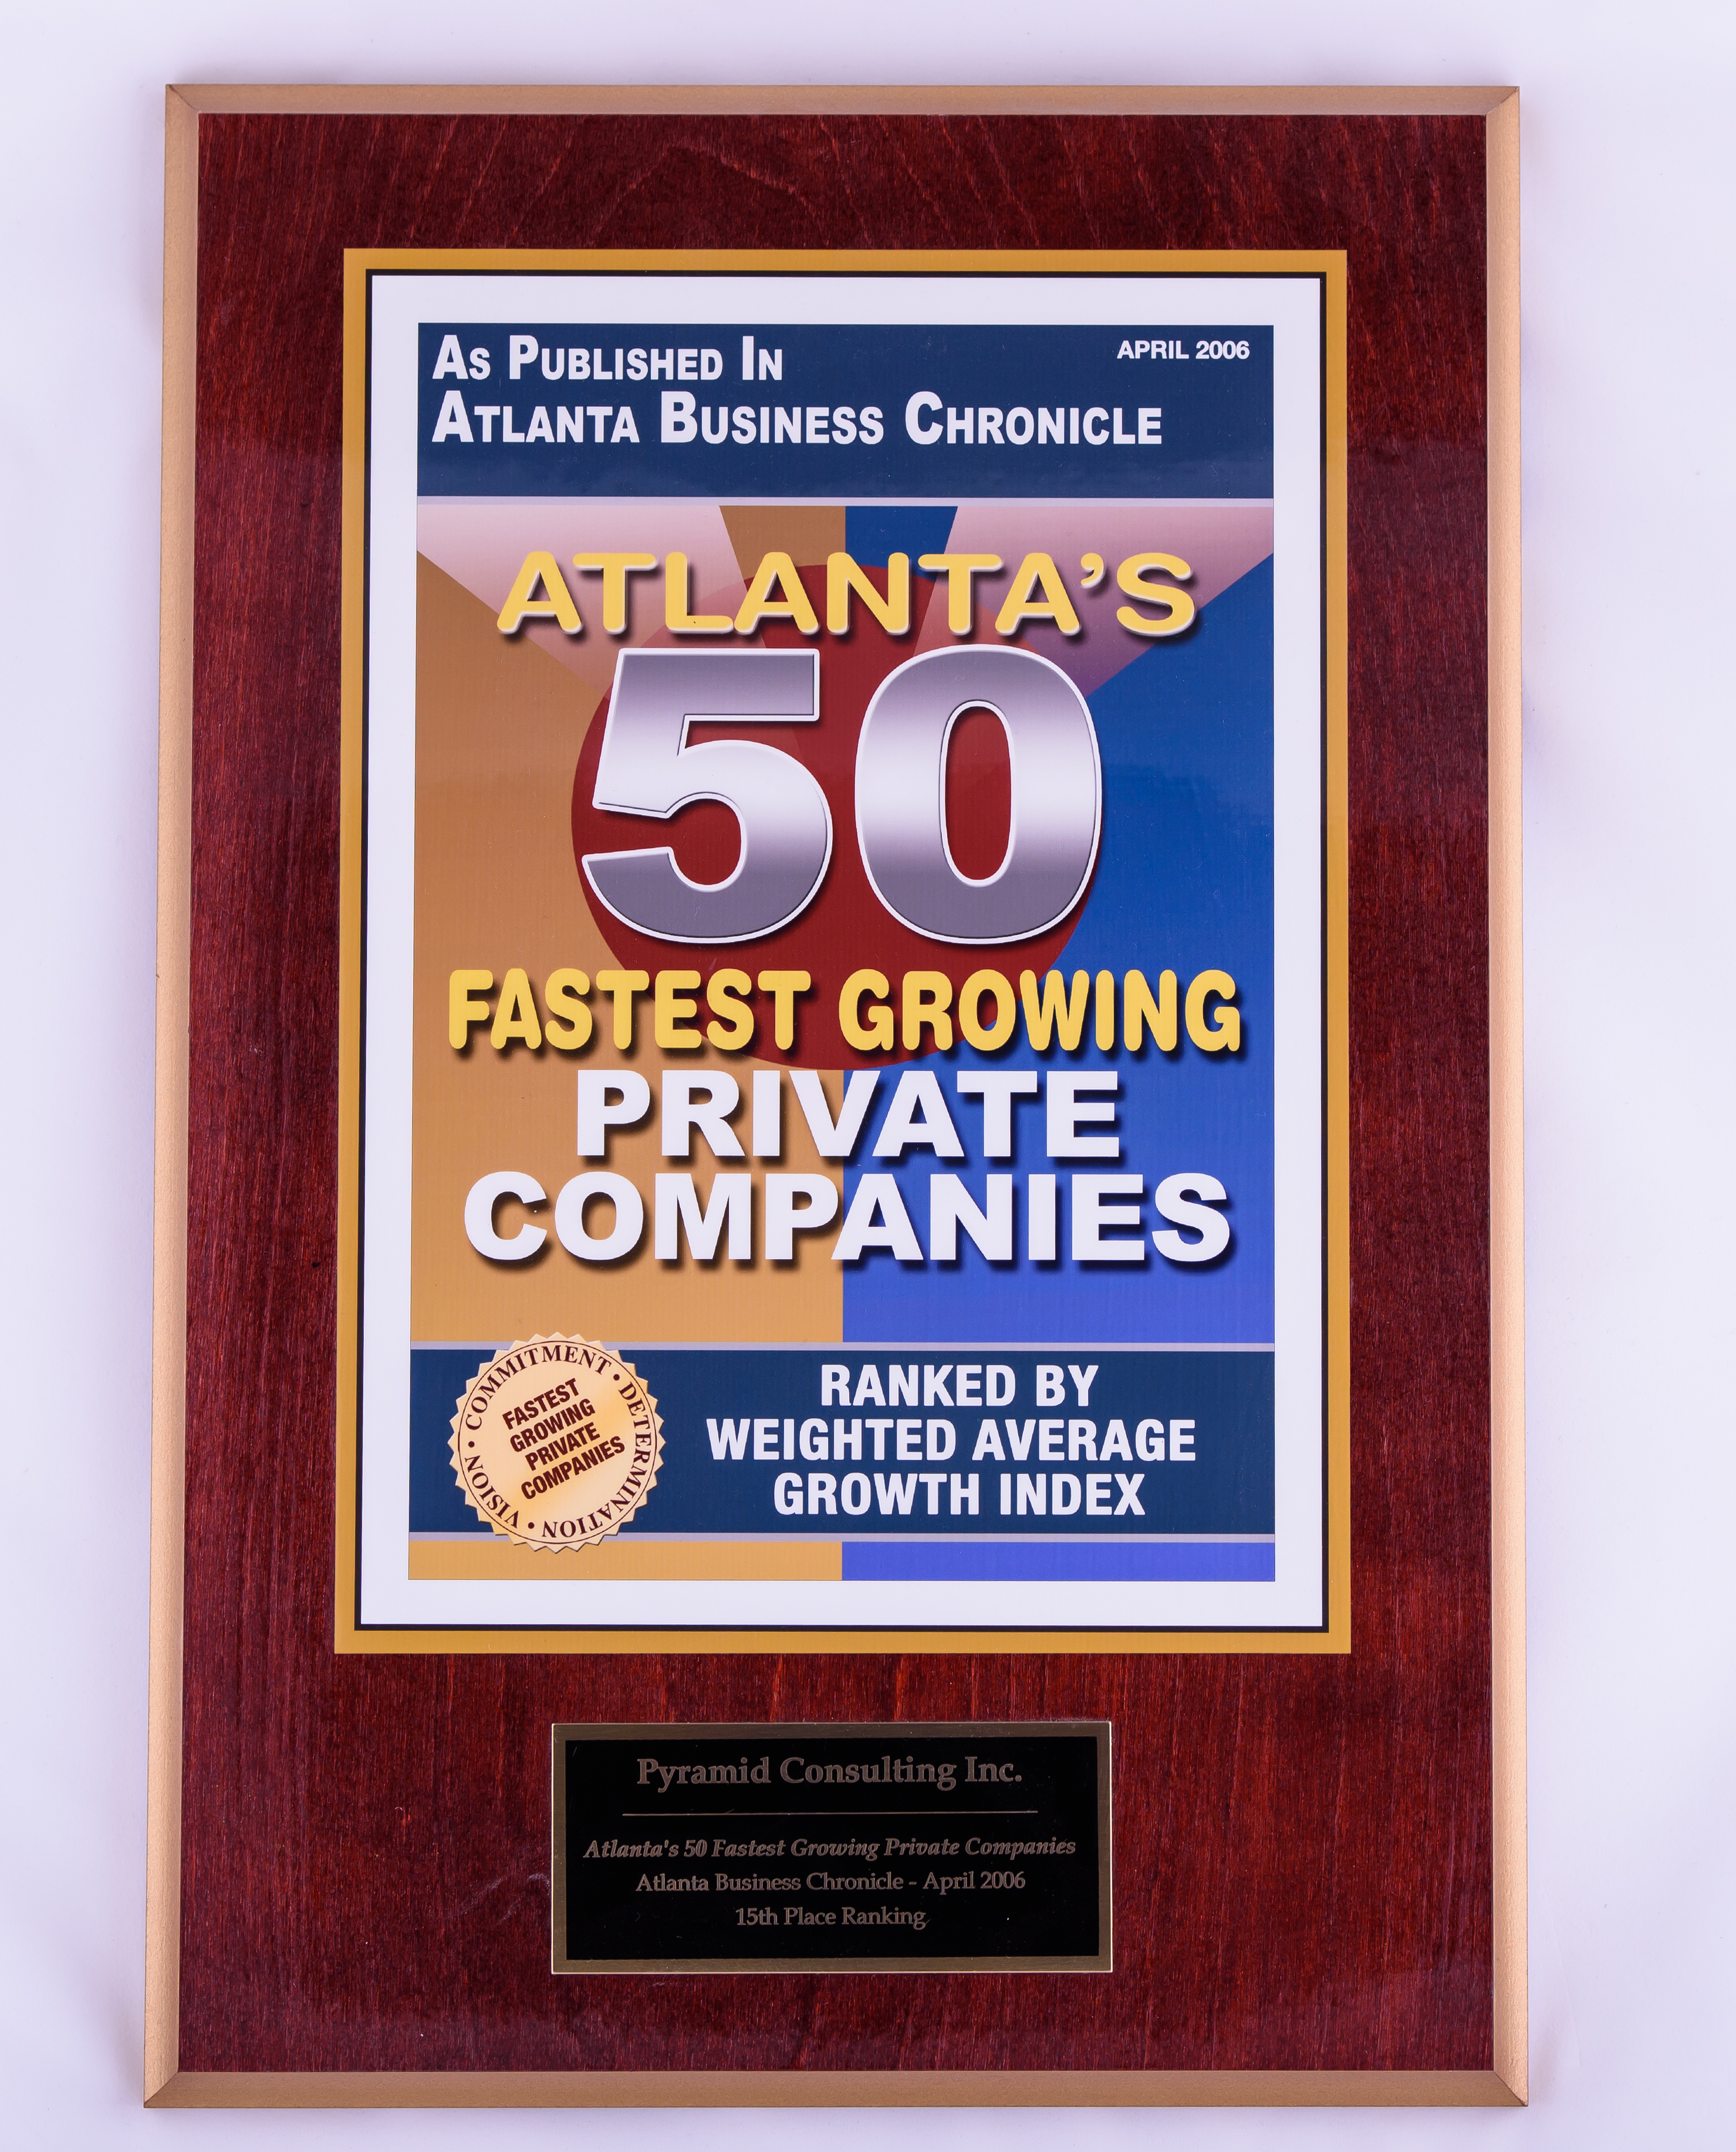 2006 Atlanta's Top 50 Fastest Growing Private Companies